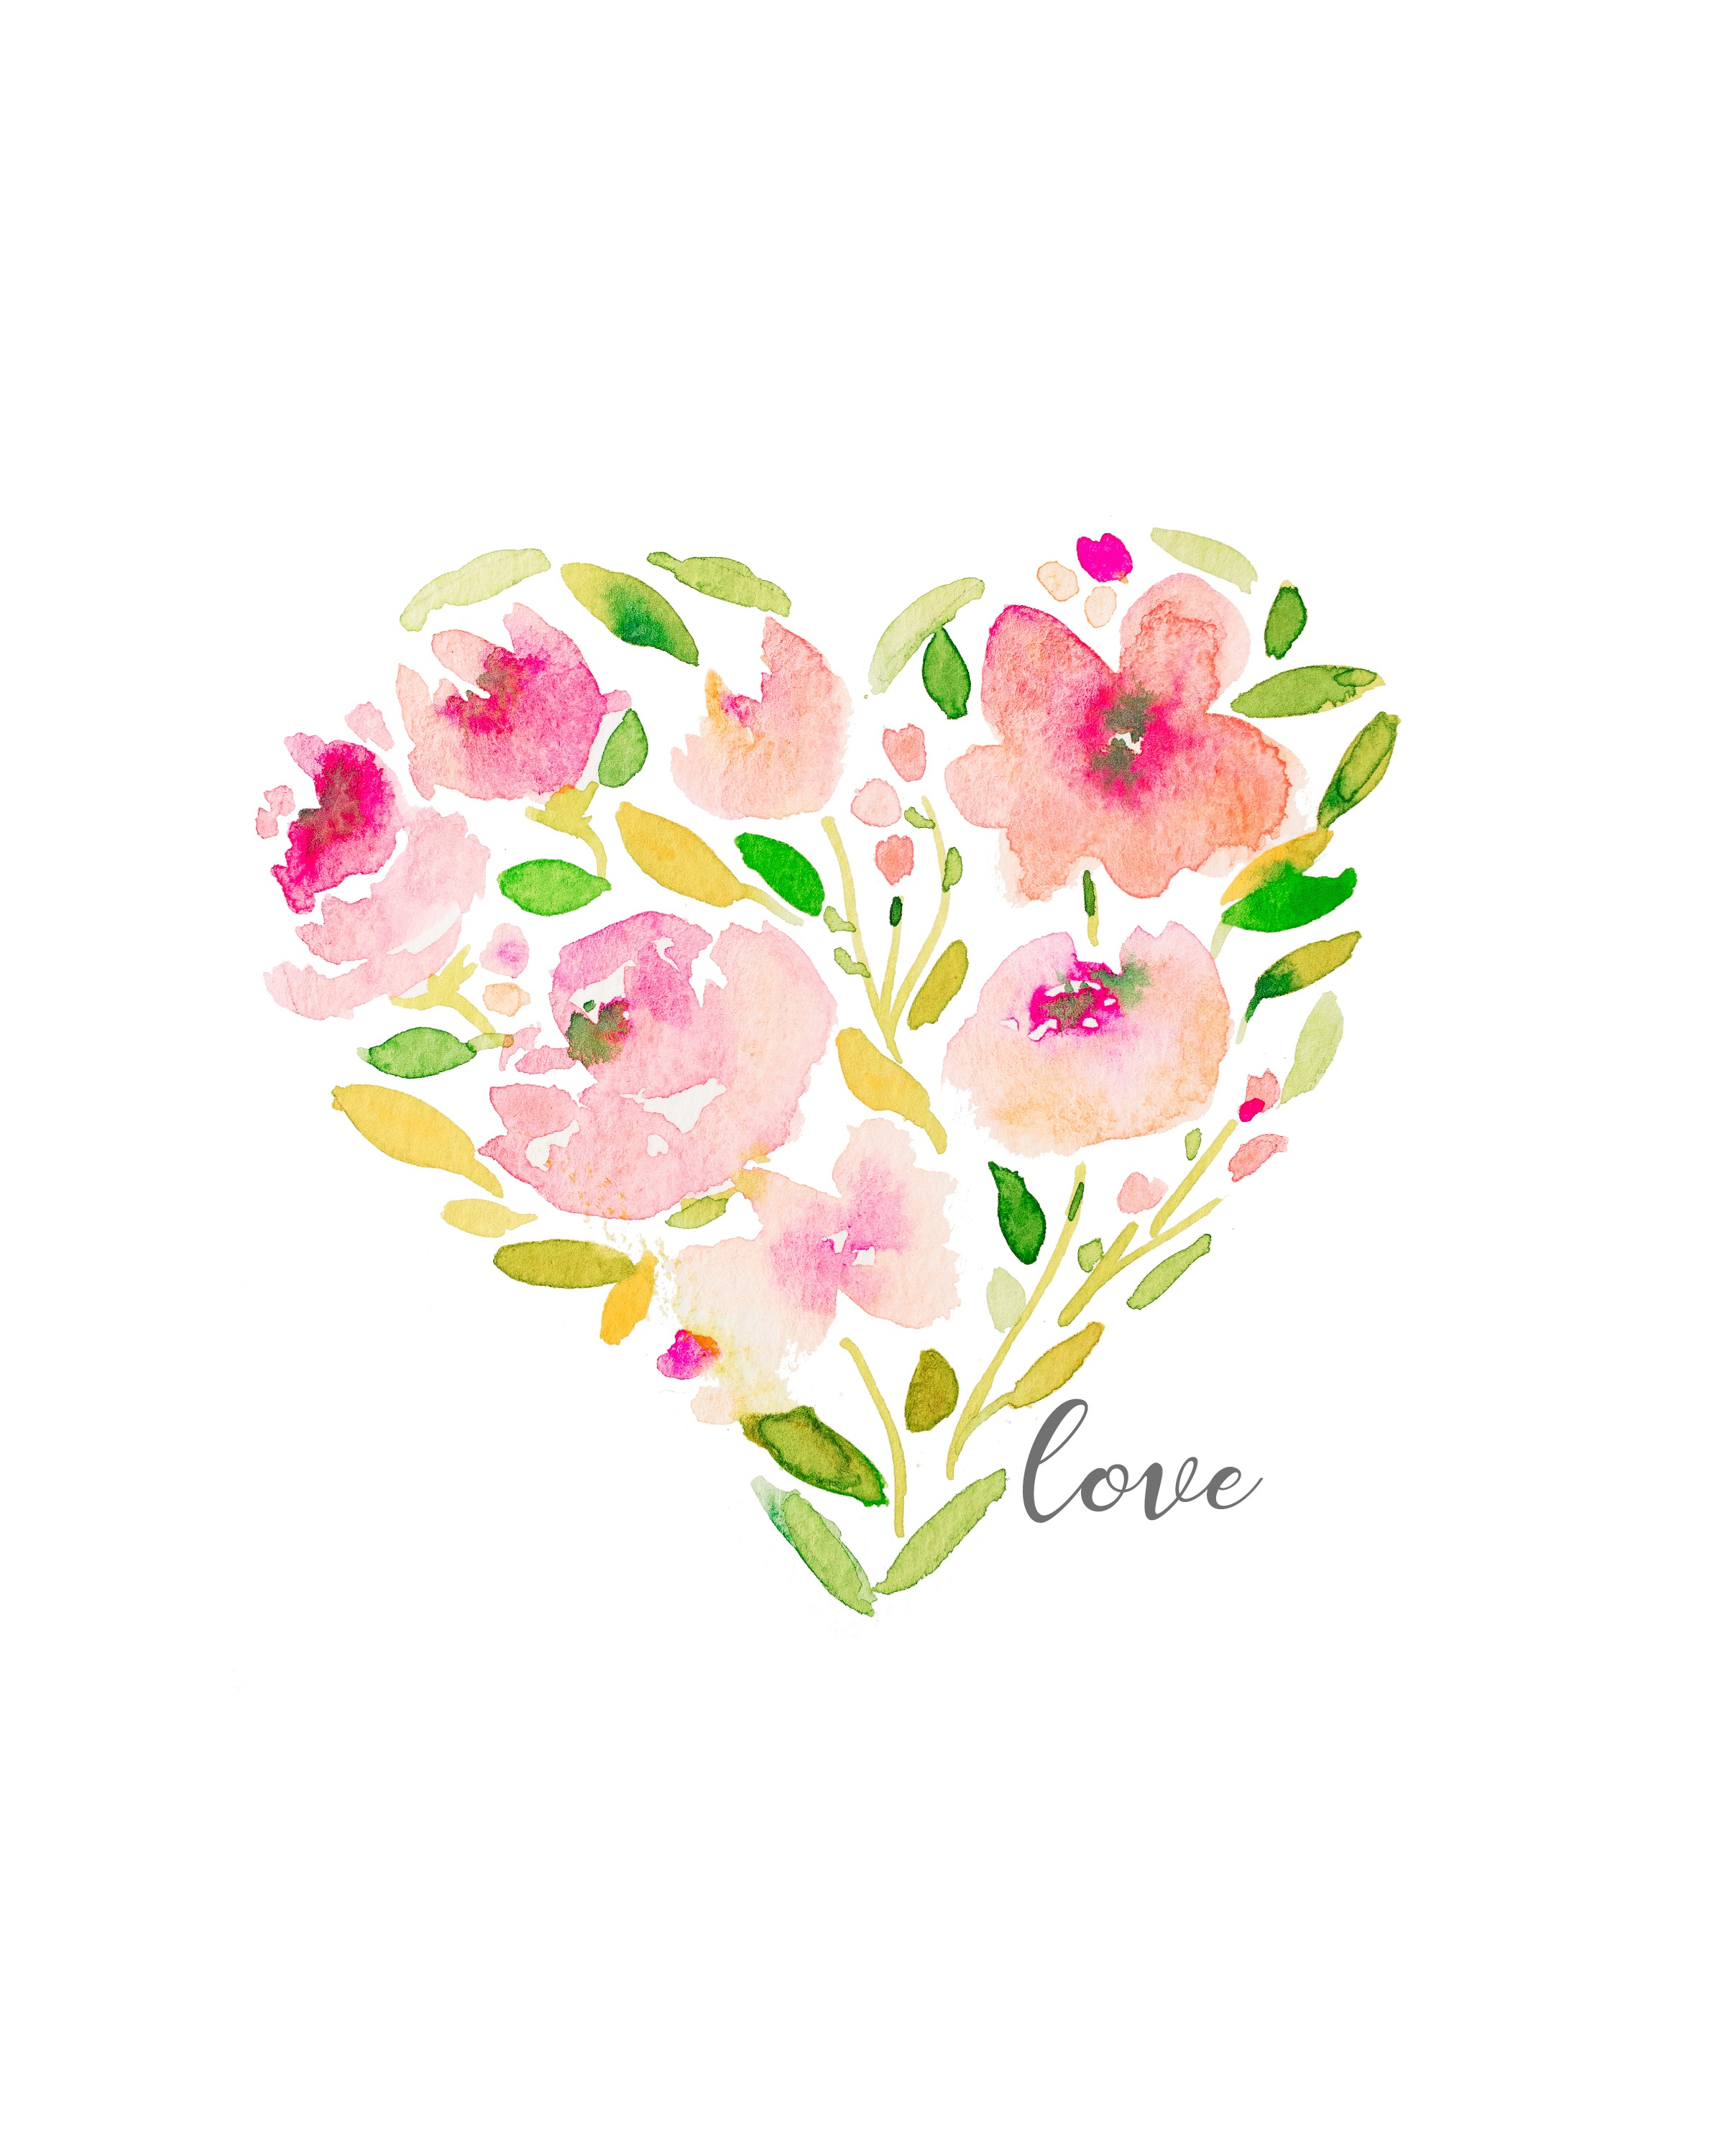 loveprintable2